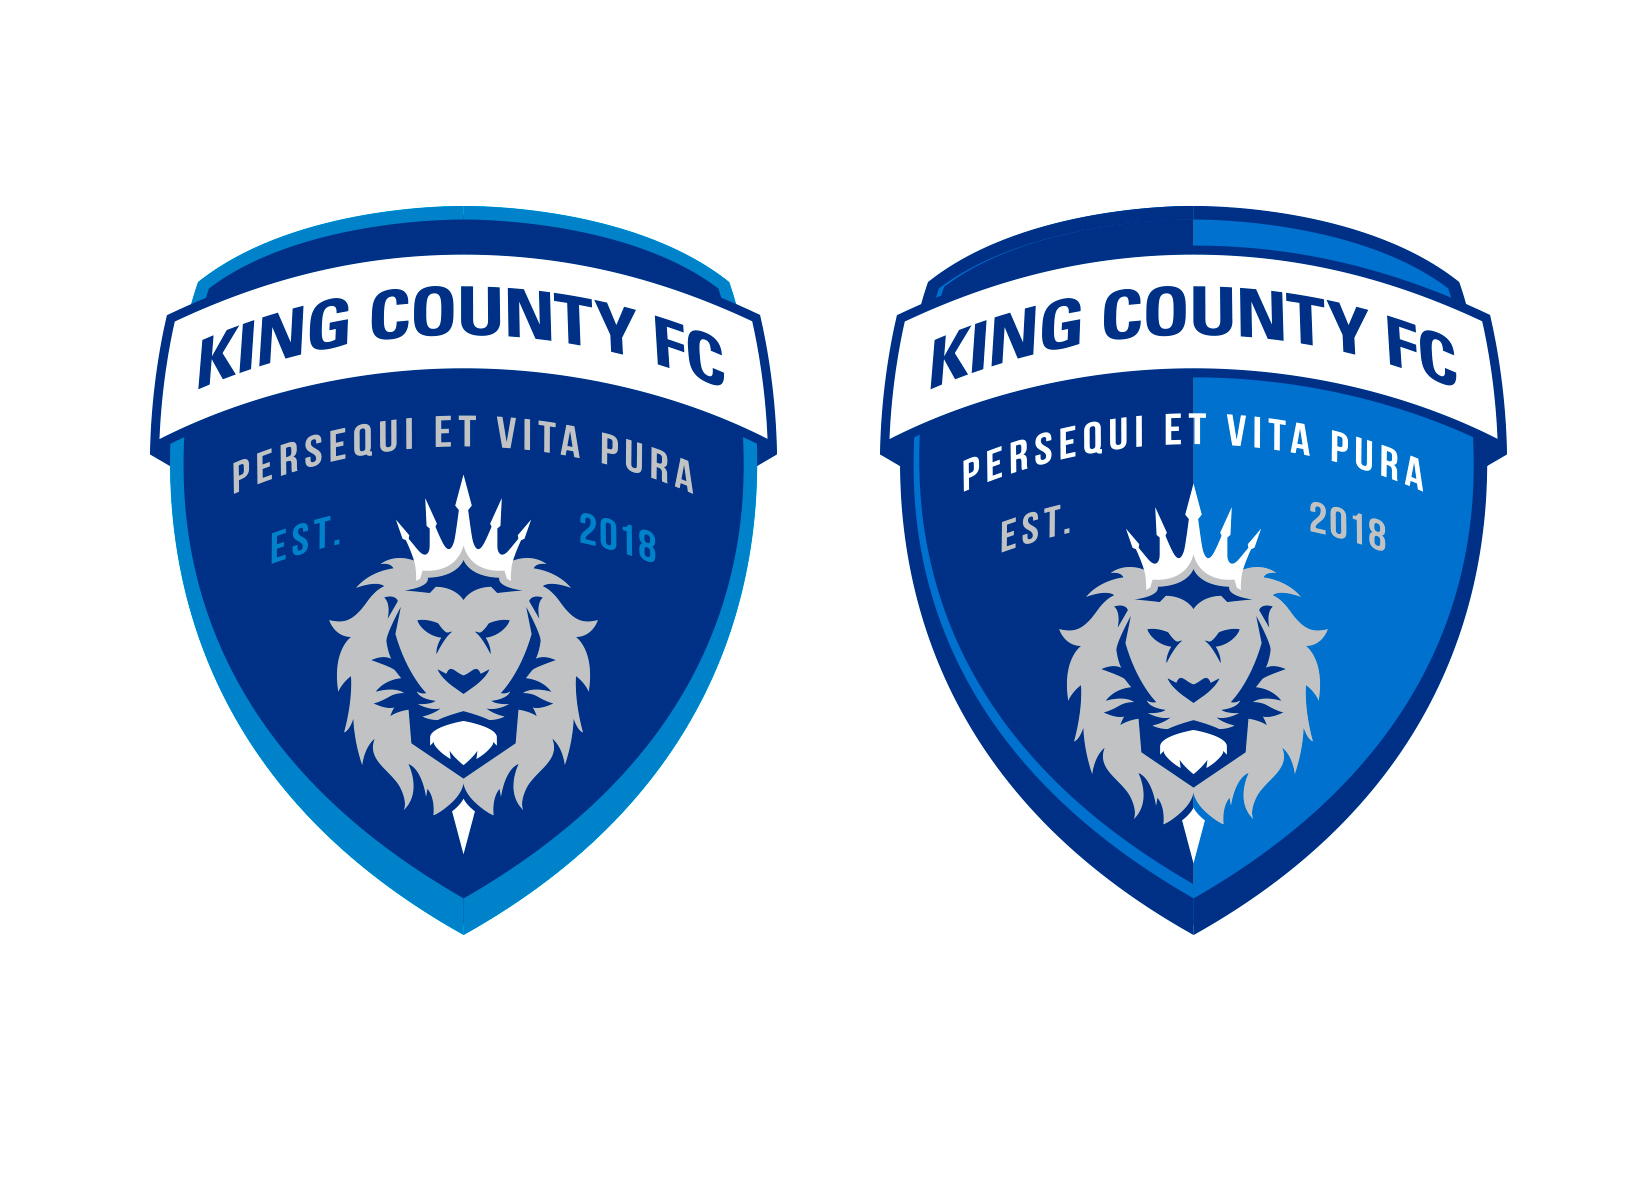 custom-soccer-crest-design-for-king-county-fc-2.jpg